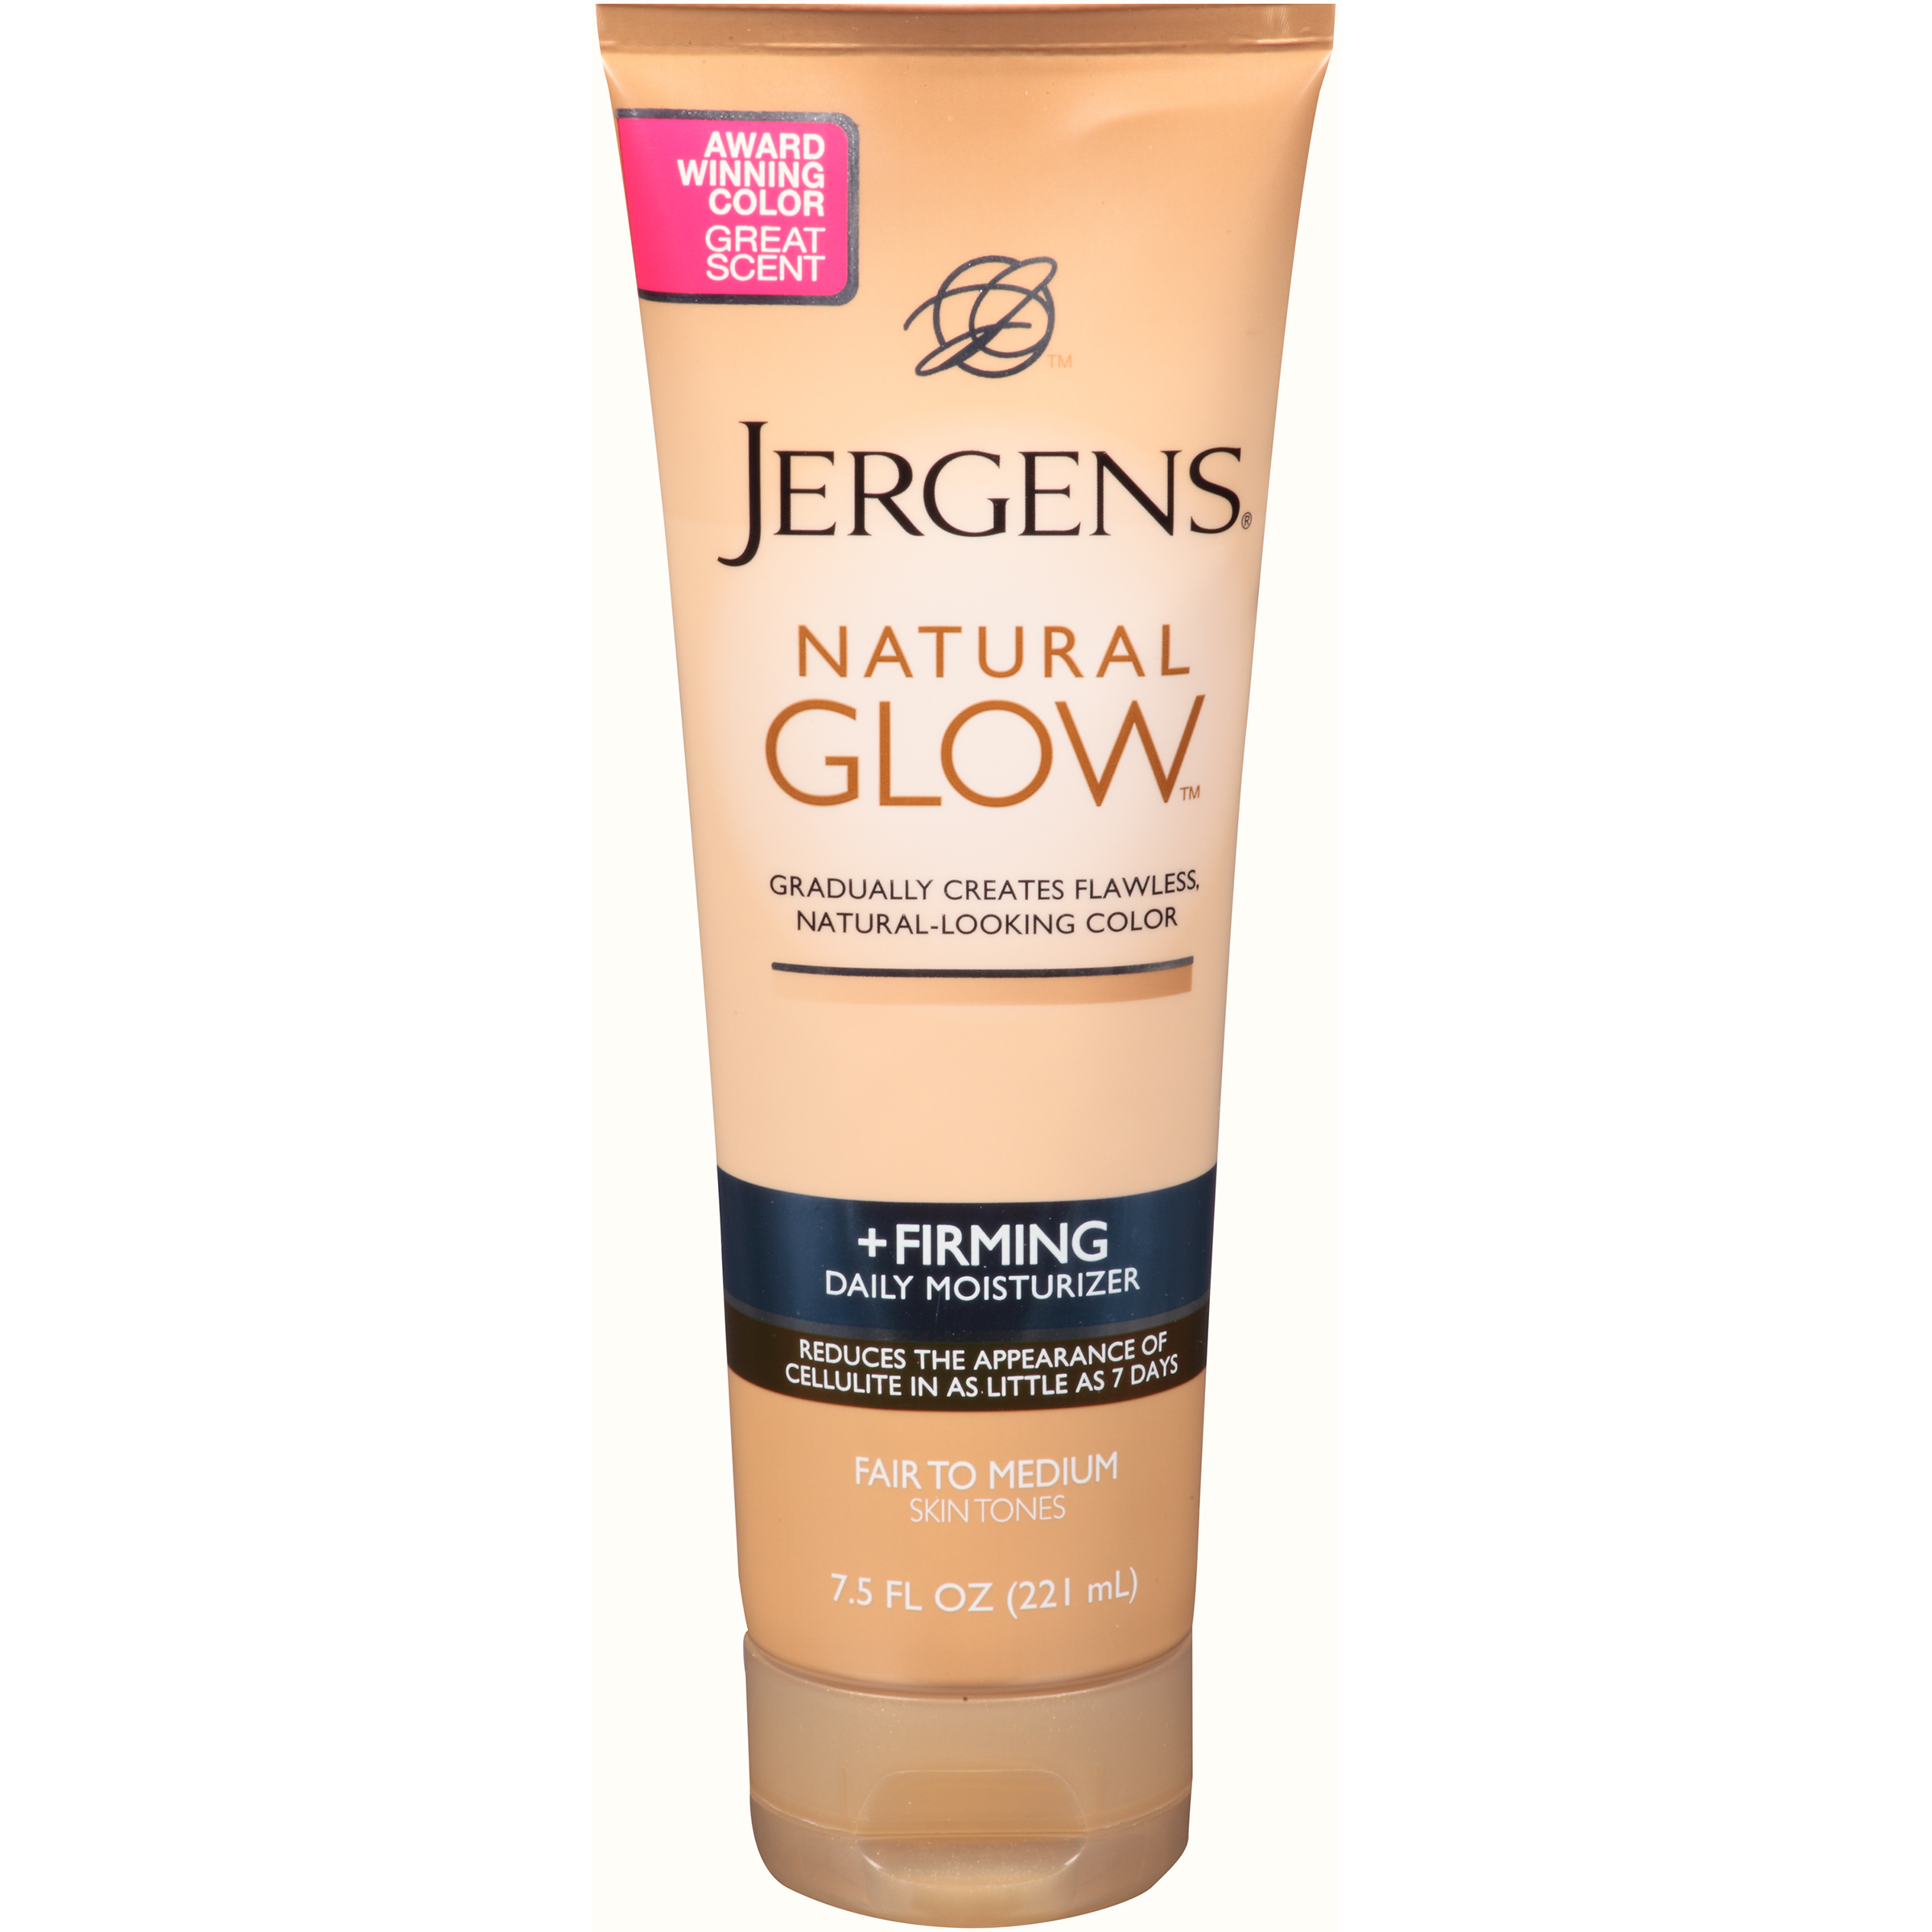 Jergens Natural Glow Firming Daily Moisturizer Fair to Medium Skin Tone - 7.5 oz